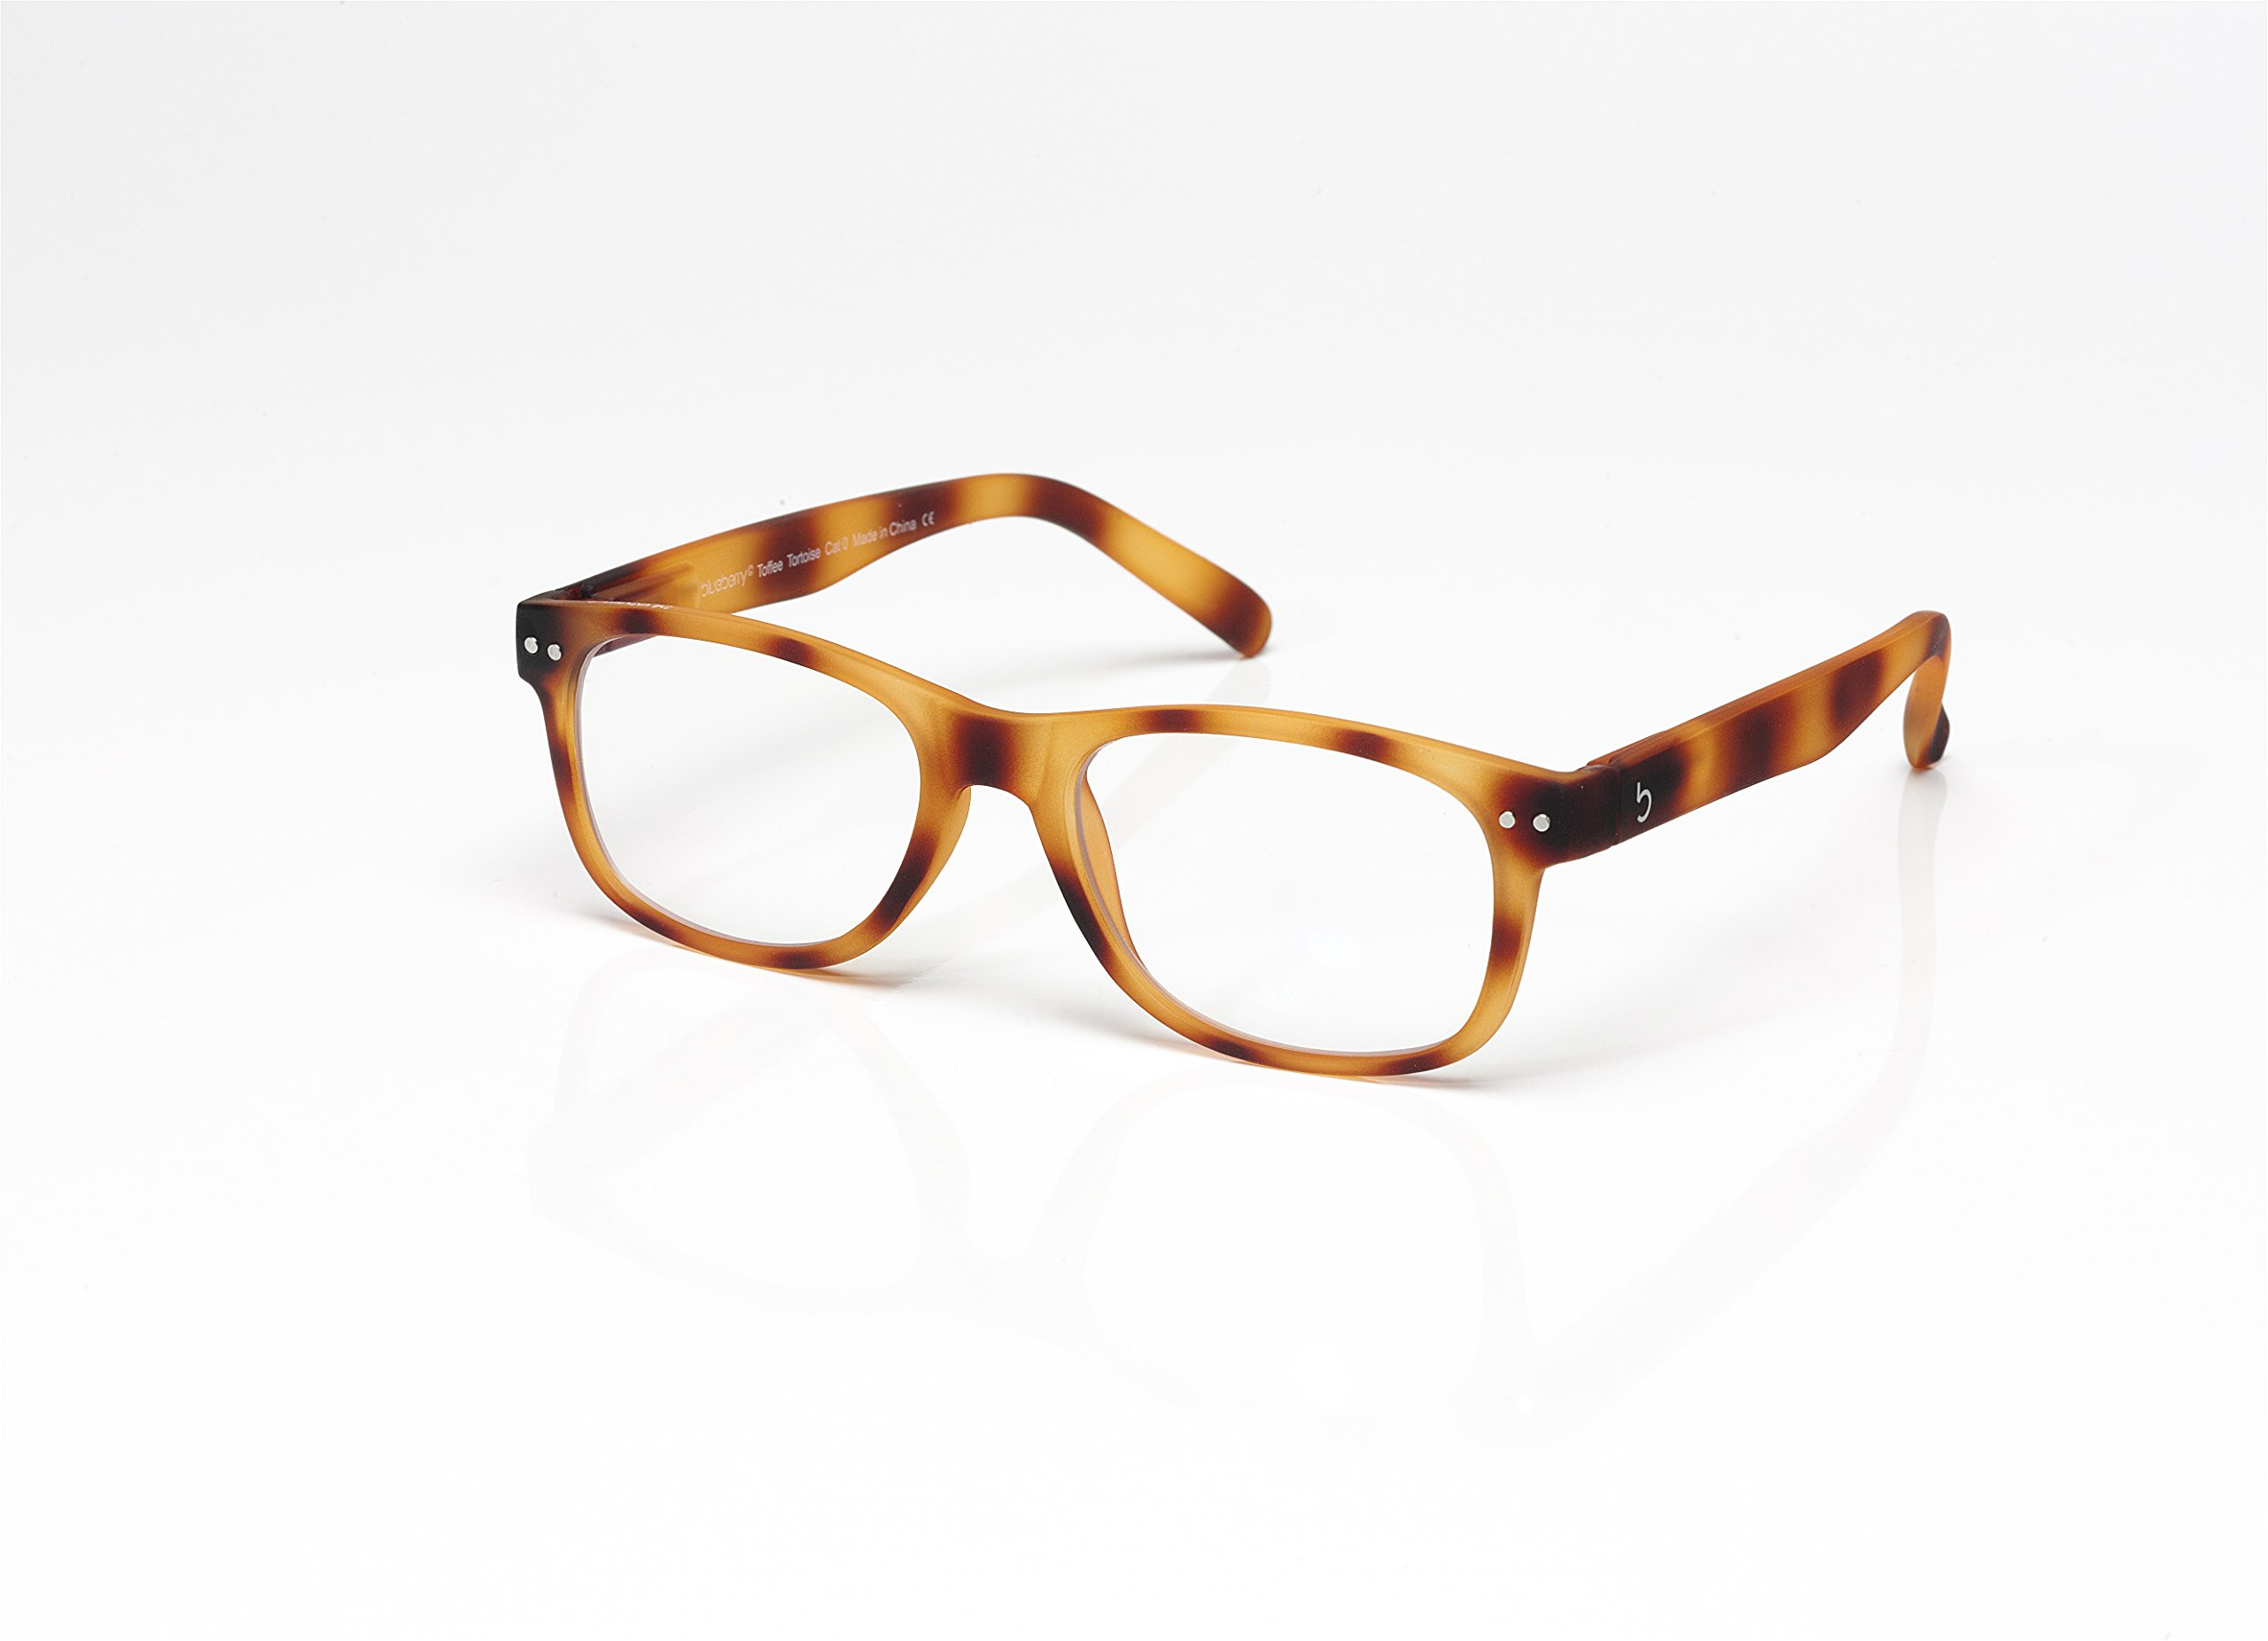 Blueberry - Computer Glasses - Size L - Brown - (Toffee Tortoise, Clear)